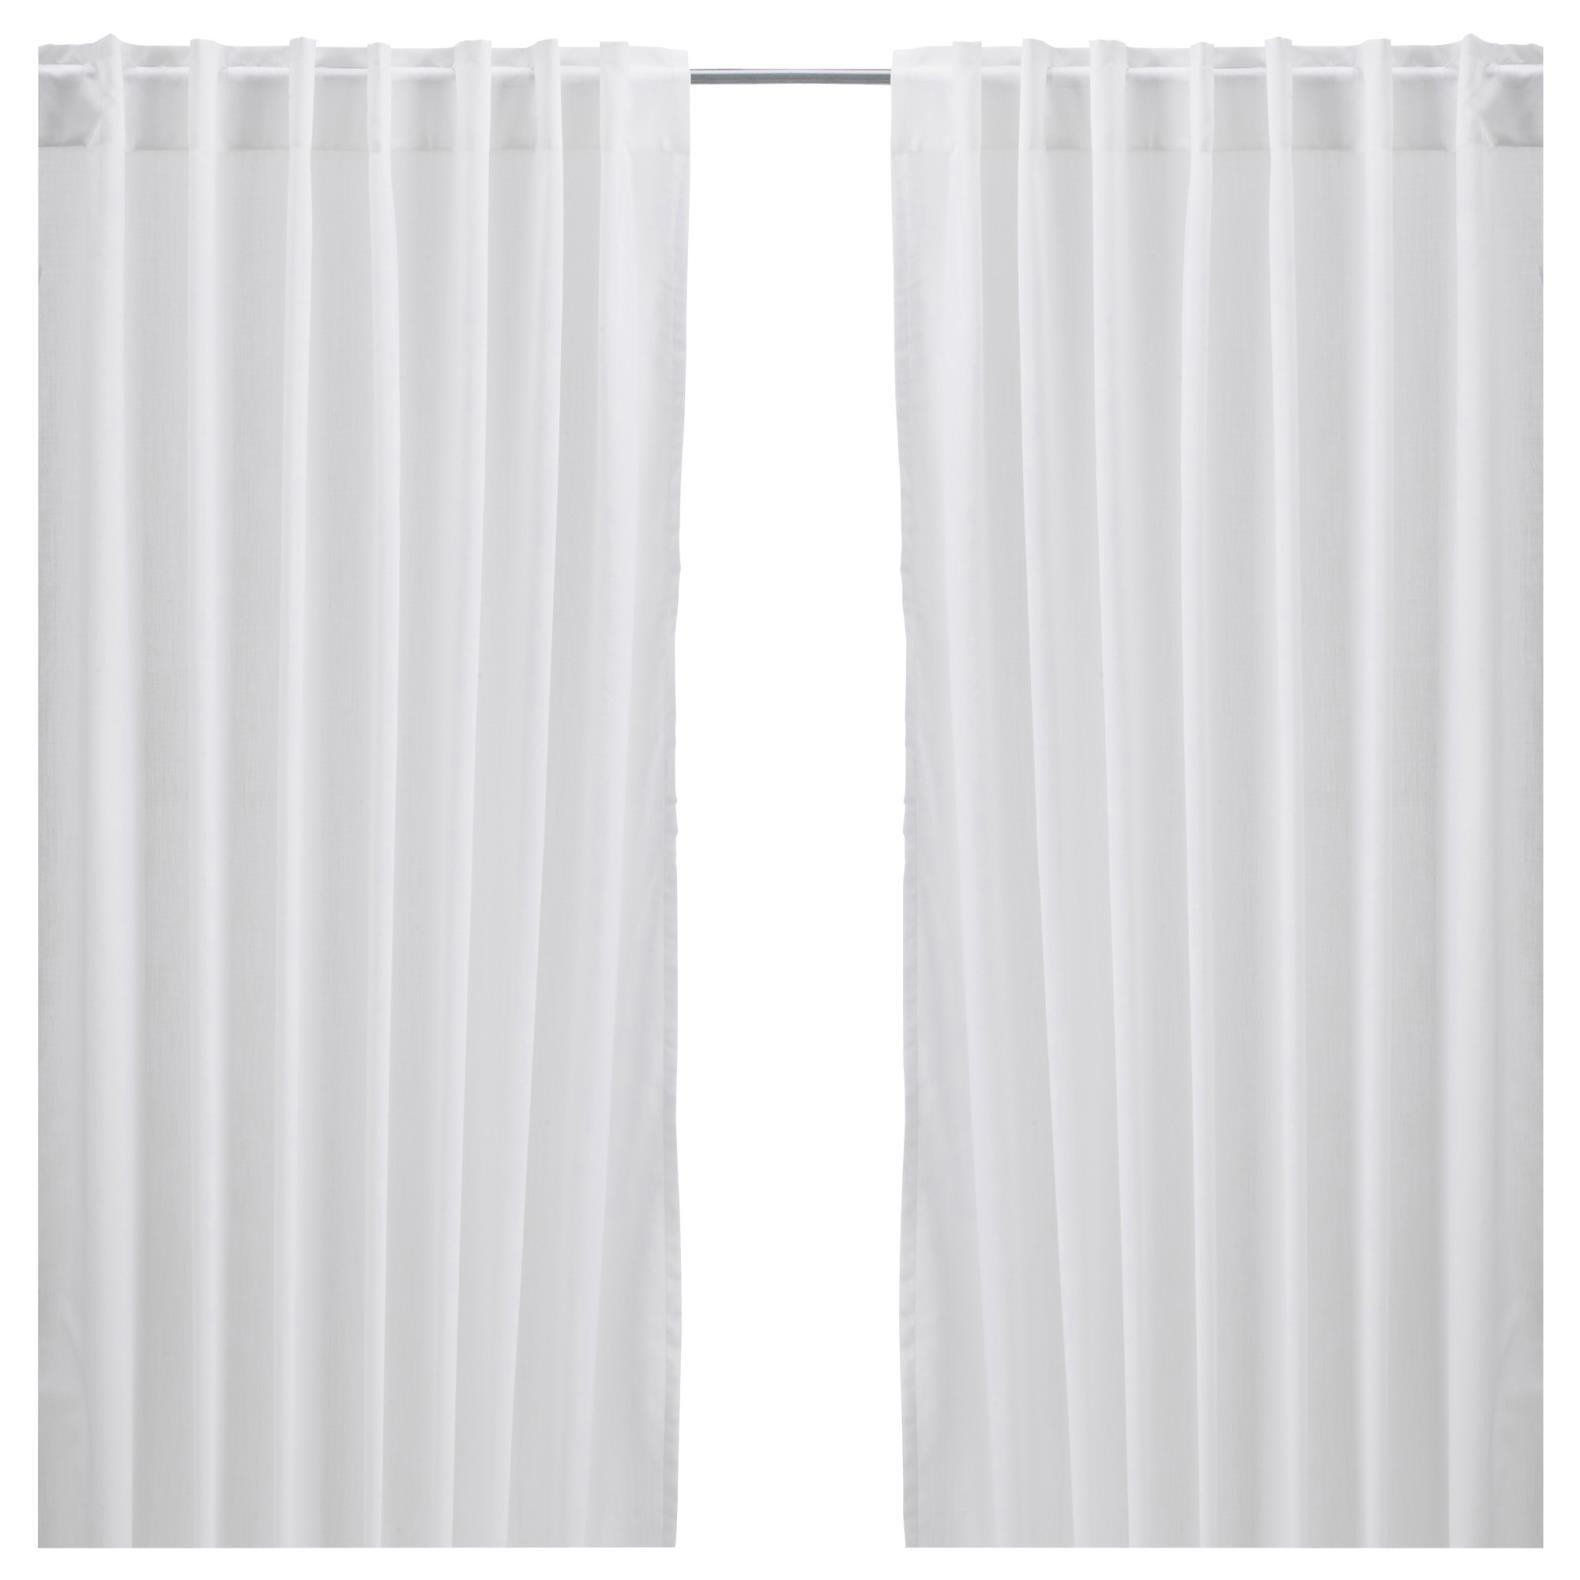 Curtains With Cool Curtain Voile Overlay One Panel Custom Throughout White Opaque Curtains (Image 4 of 15)